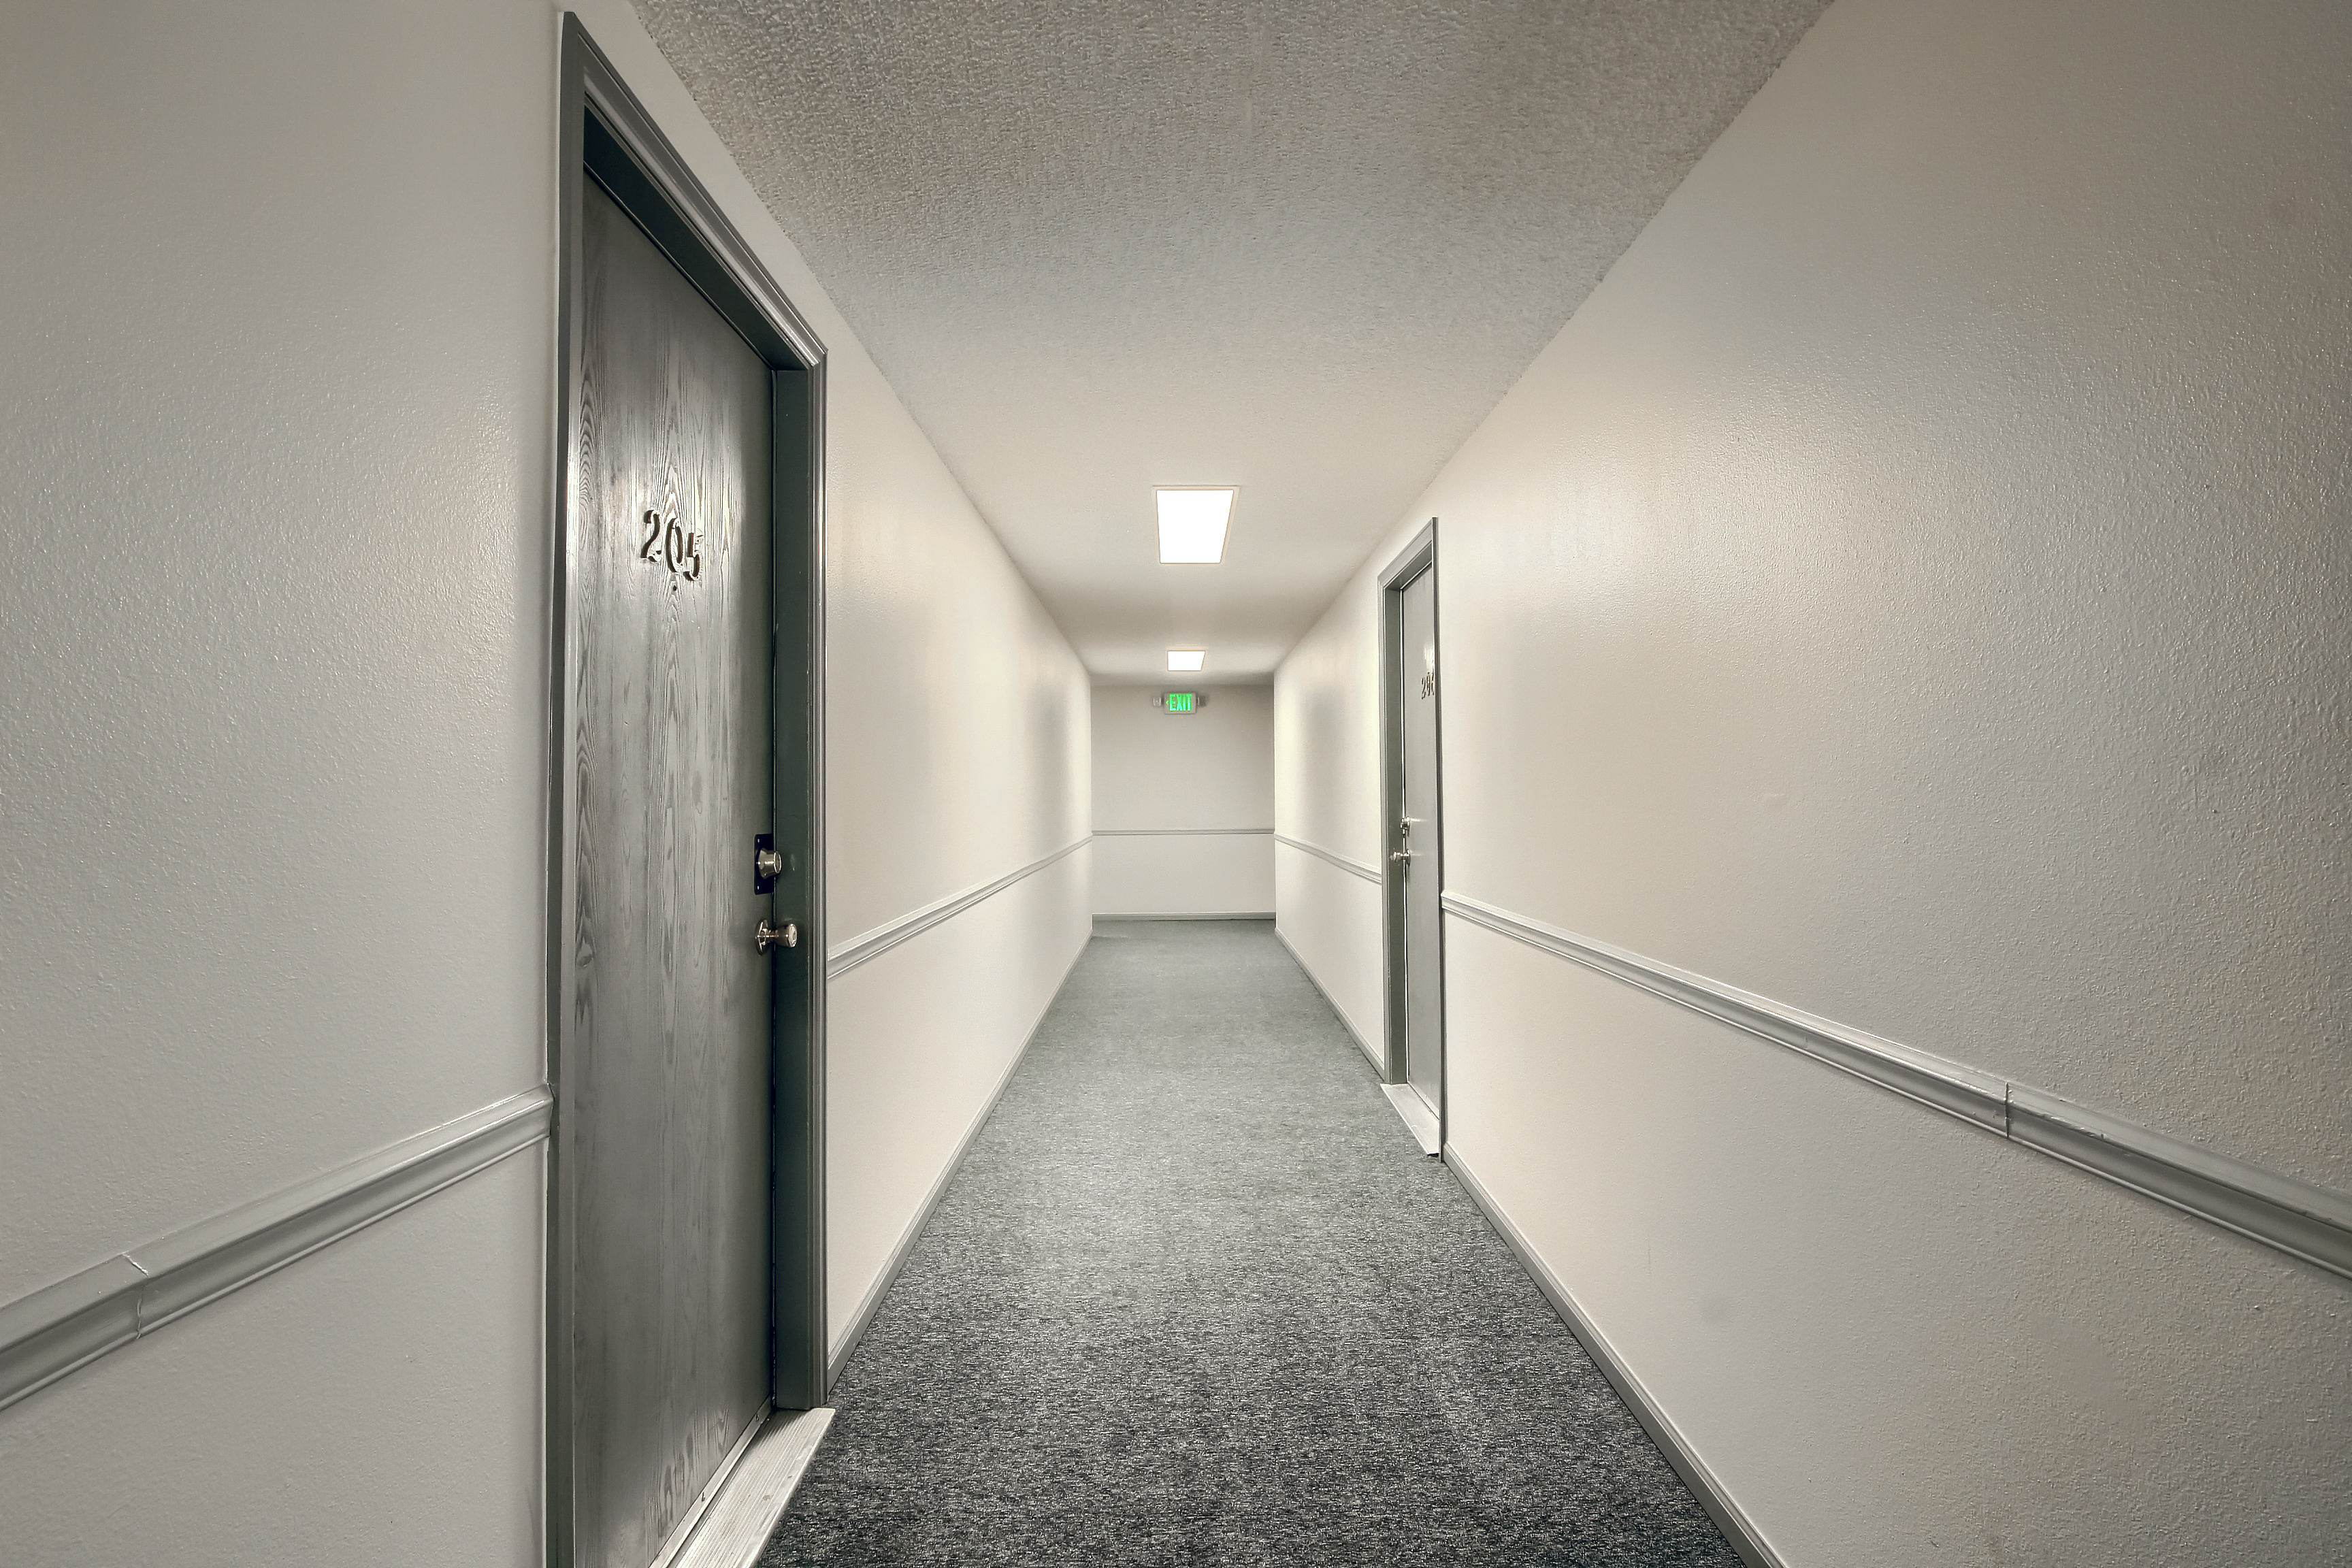 Secure Interior Hallways with Controlled Access